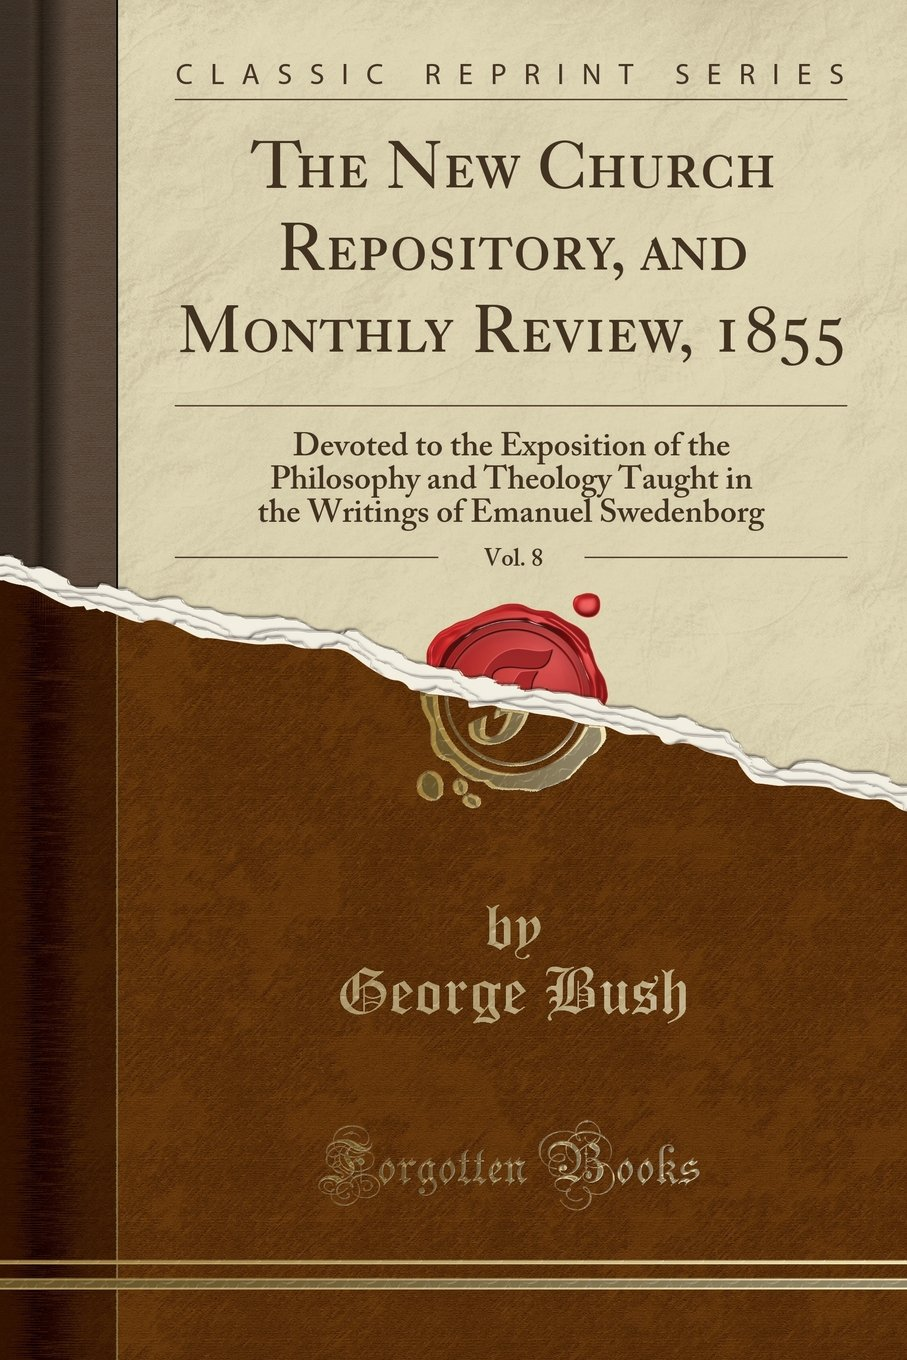 Download The New Church Repository, and Monthly Review, 1855, Vol. 8: Devoted to the Exposition of the Philosophy and Theology Taught in the Writings of Emanuel Swedenborg (Classic Reprint) pdf